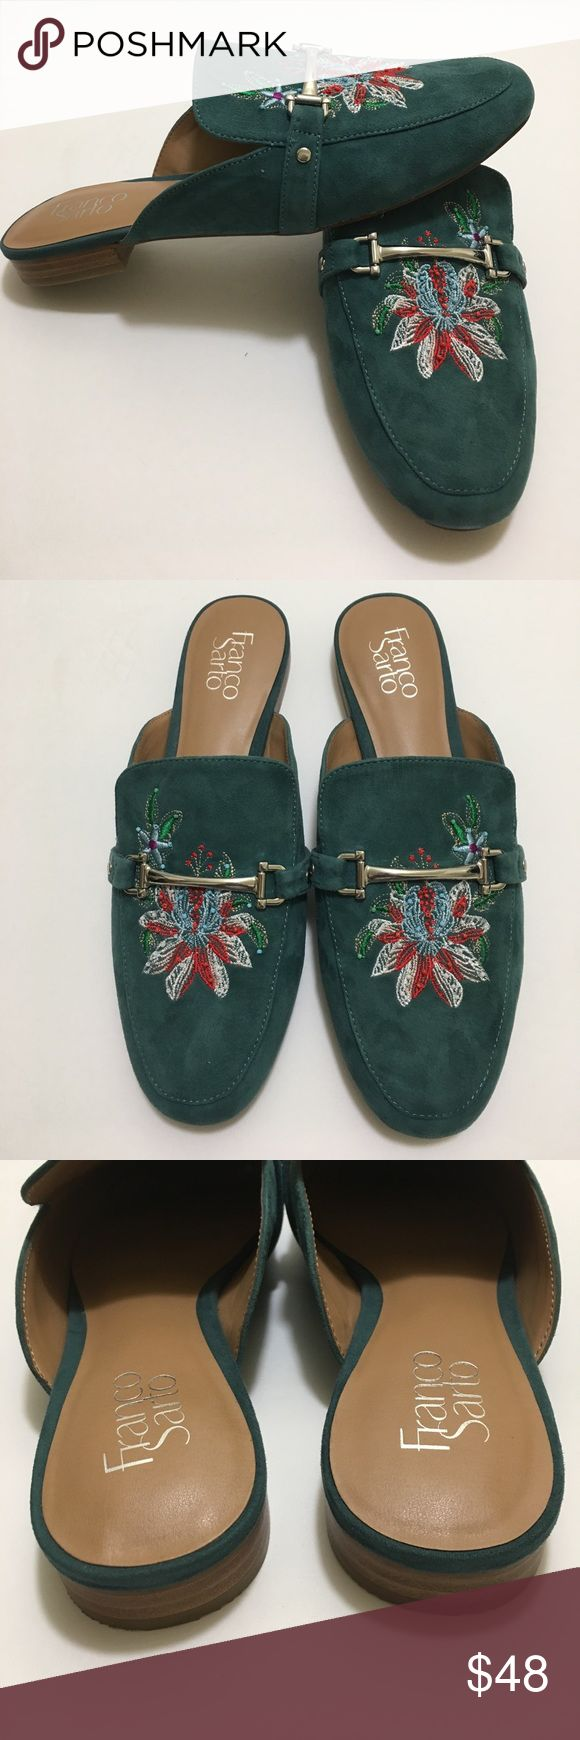 """Franco Sarto """"Devra"""" Flats NWOT- size 8.5M, Harbor Green with Floral stitch and bead design  - Round toe - Suede construction - Metal bit detail - Embroidered detail - Slip-on - Approx. 5/8"""" heel Size is true to size Franco Sarto Shoes Flats & Loafers"""